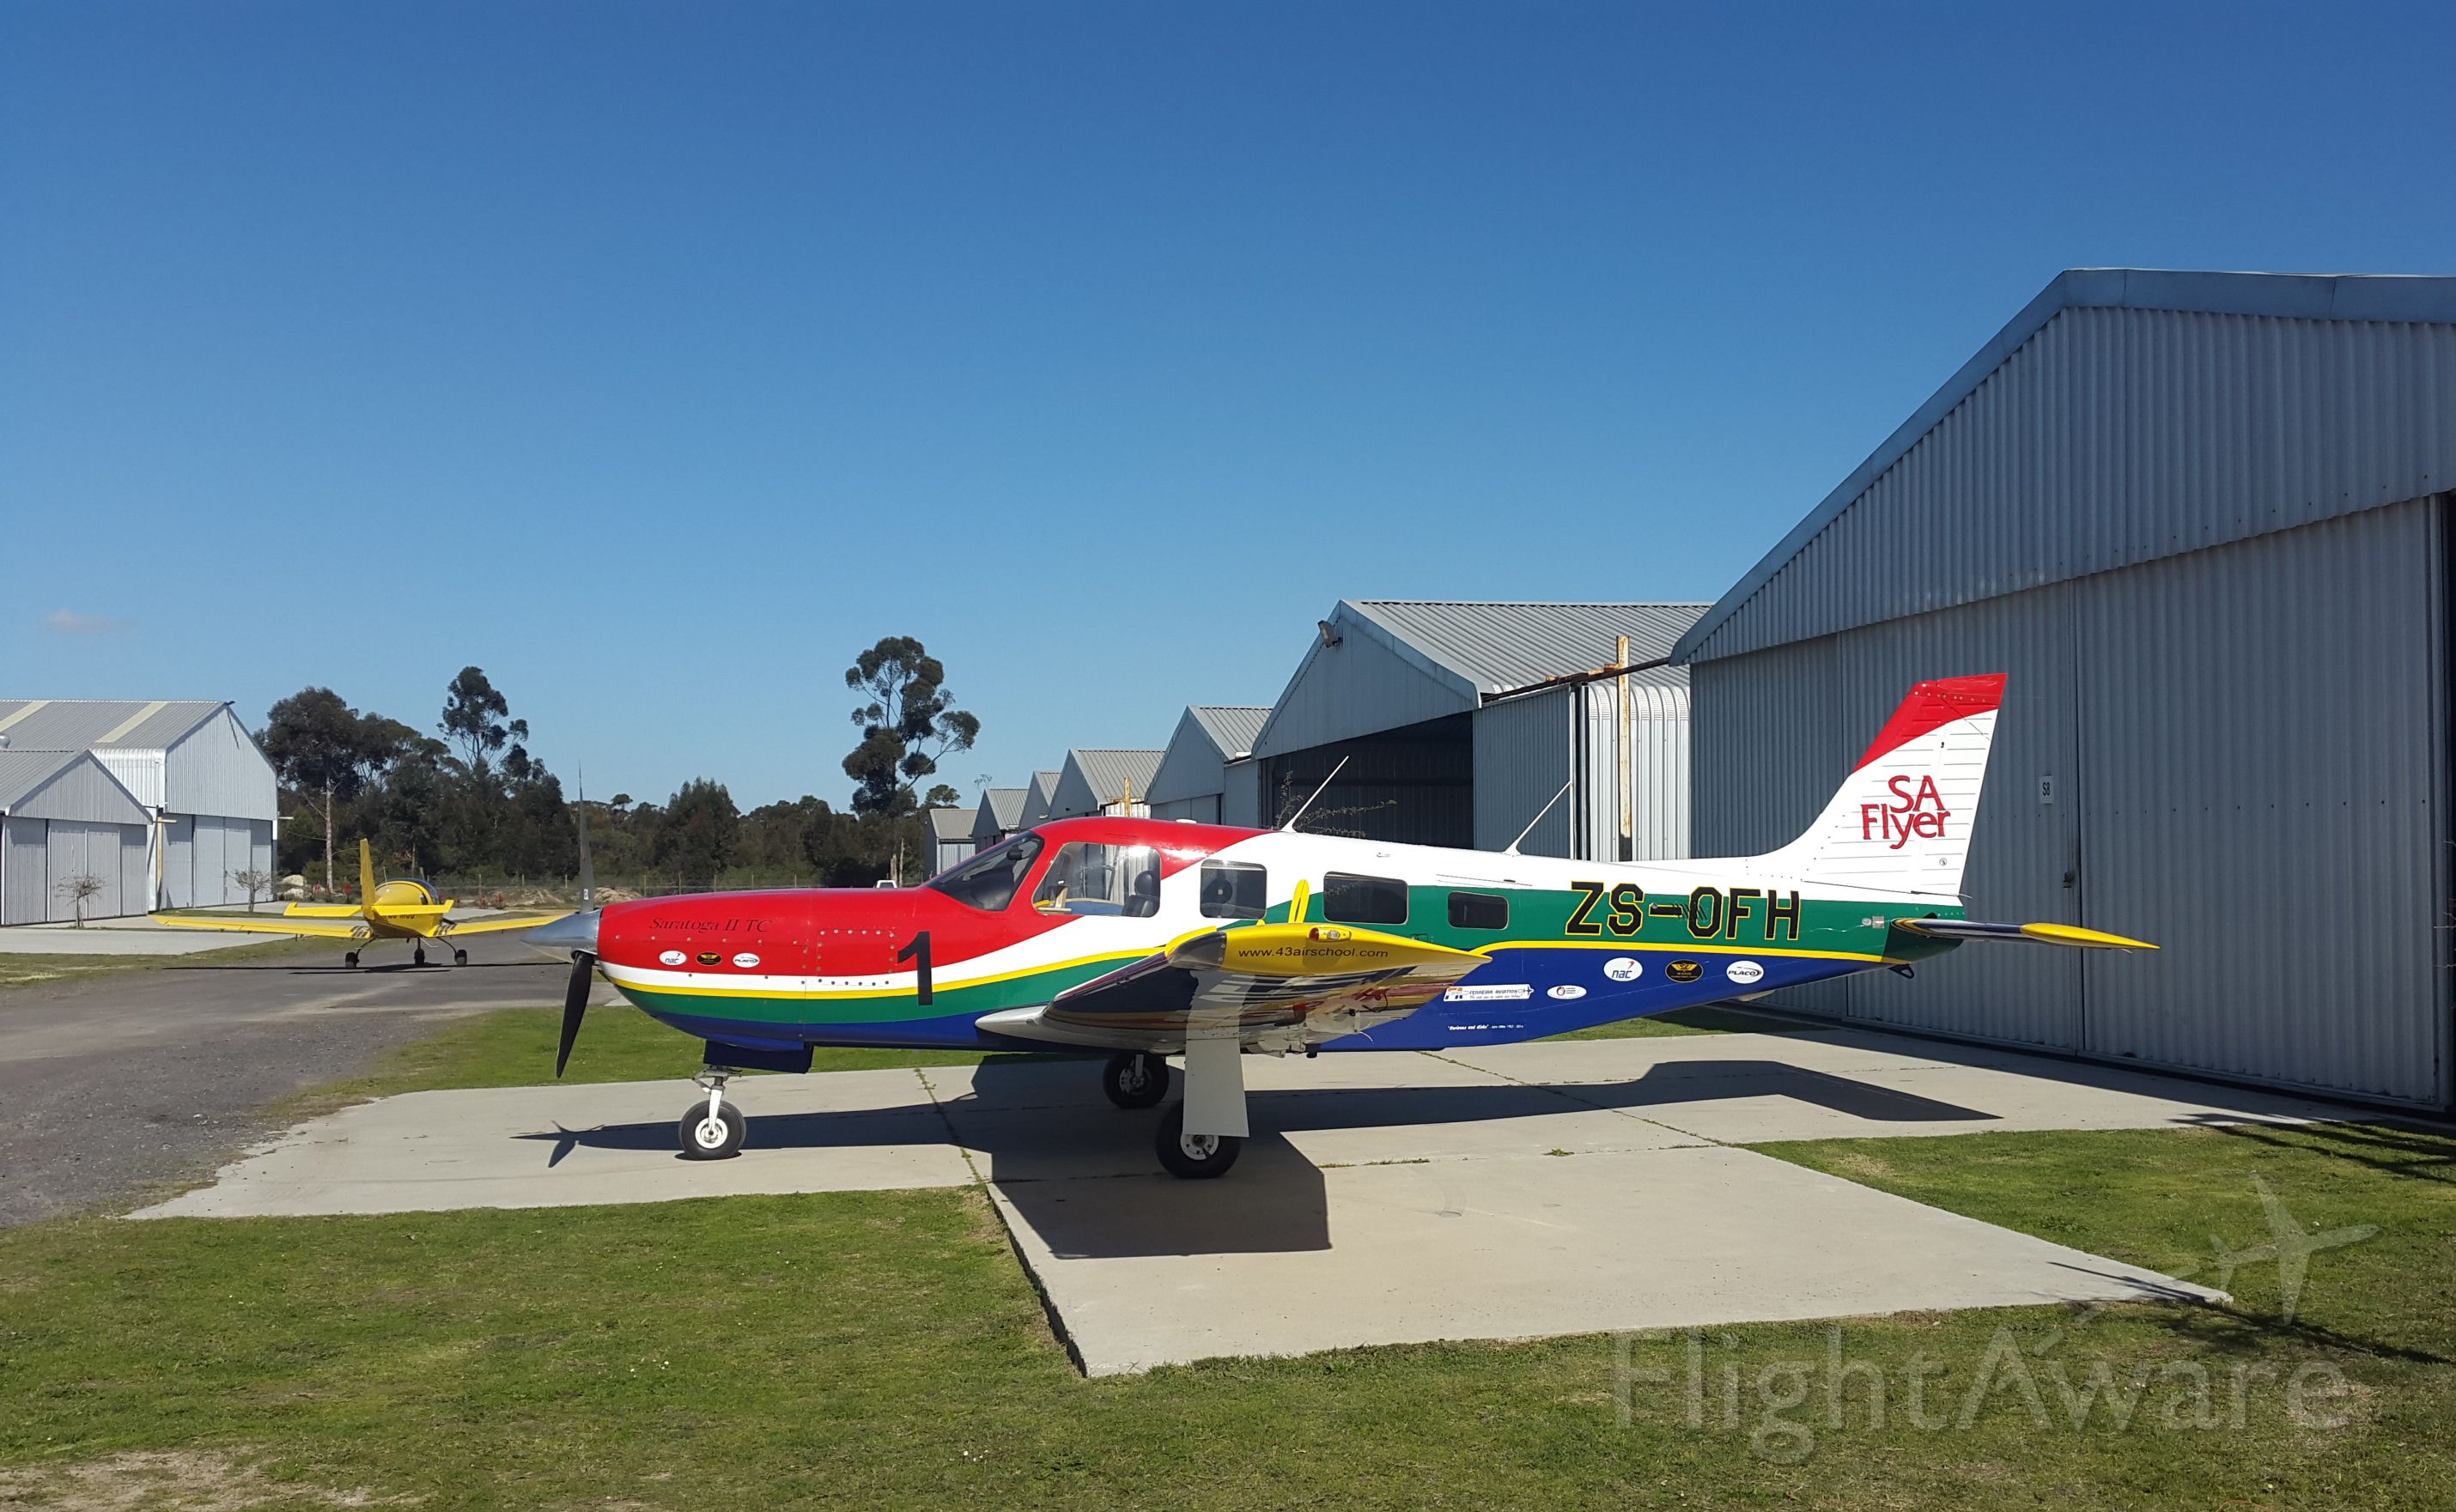 Piper Saratoga/Lance (ZU-OFH) - Morningstar Airfield, Cape of Good Hope, South Africa